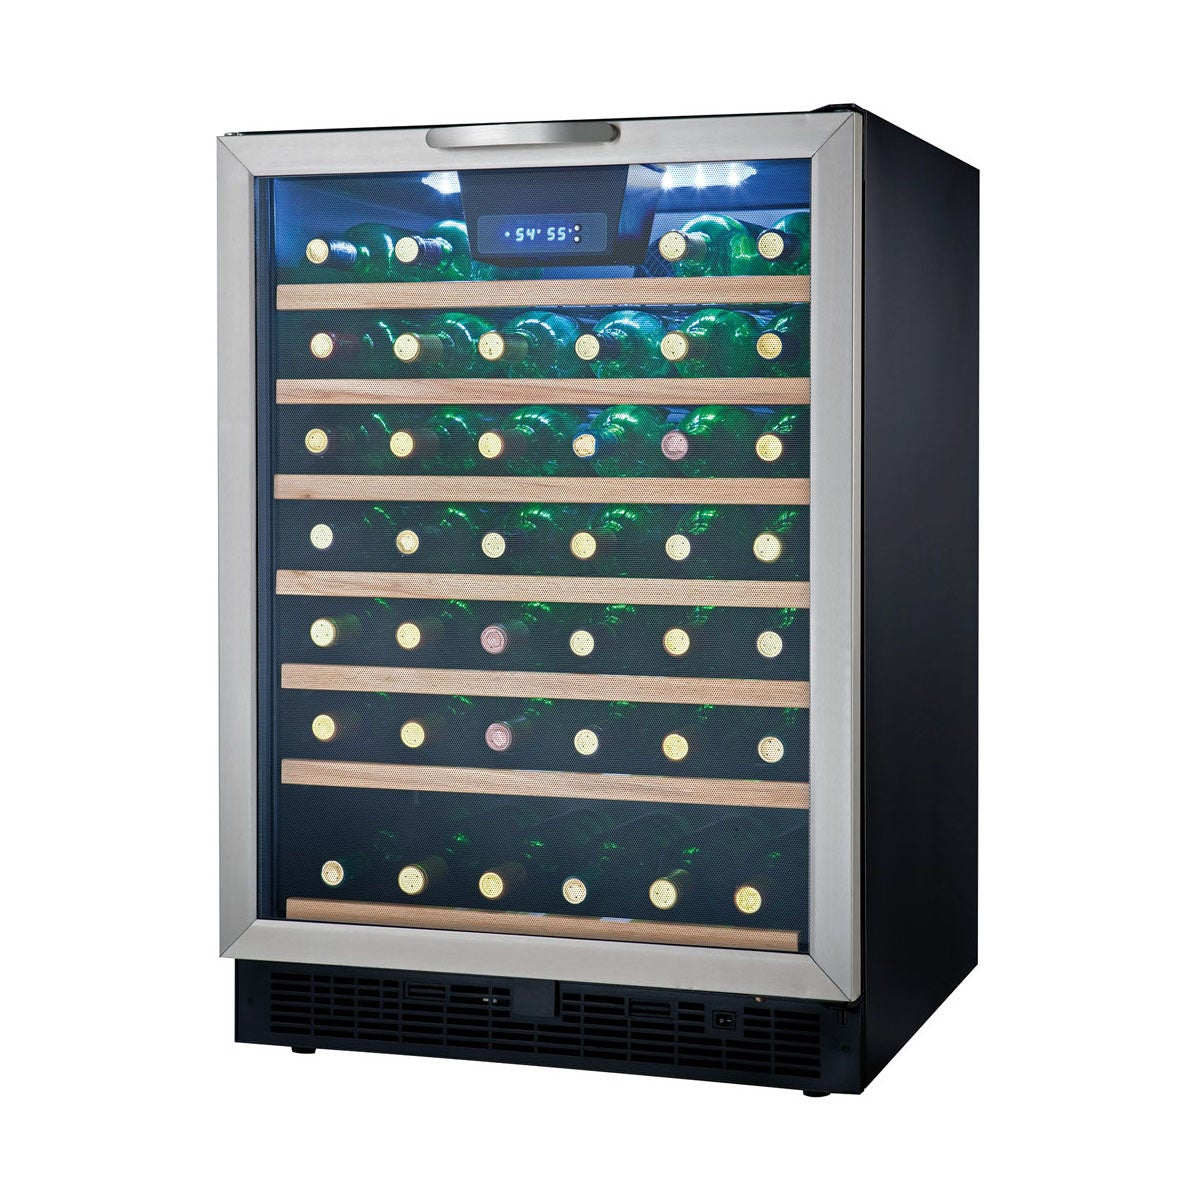 Danby Designer Series Built-in Wine Cooler with 50-Bottle...